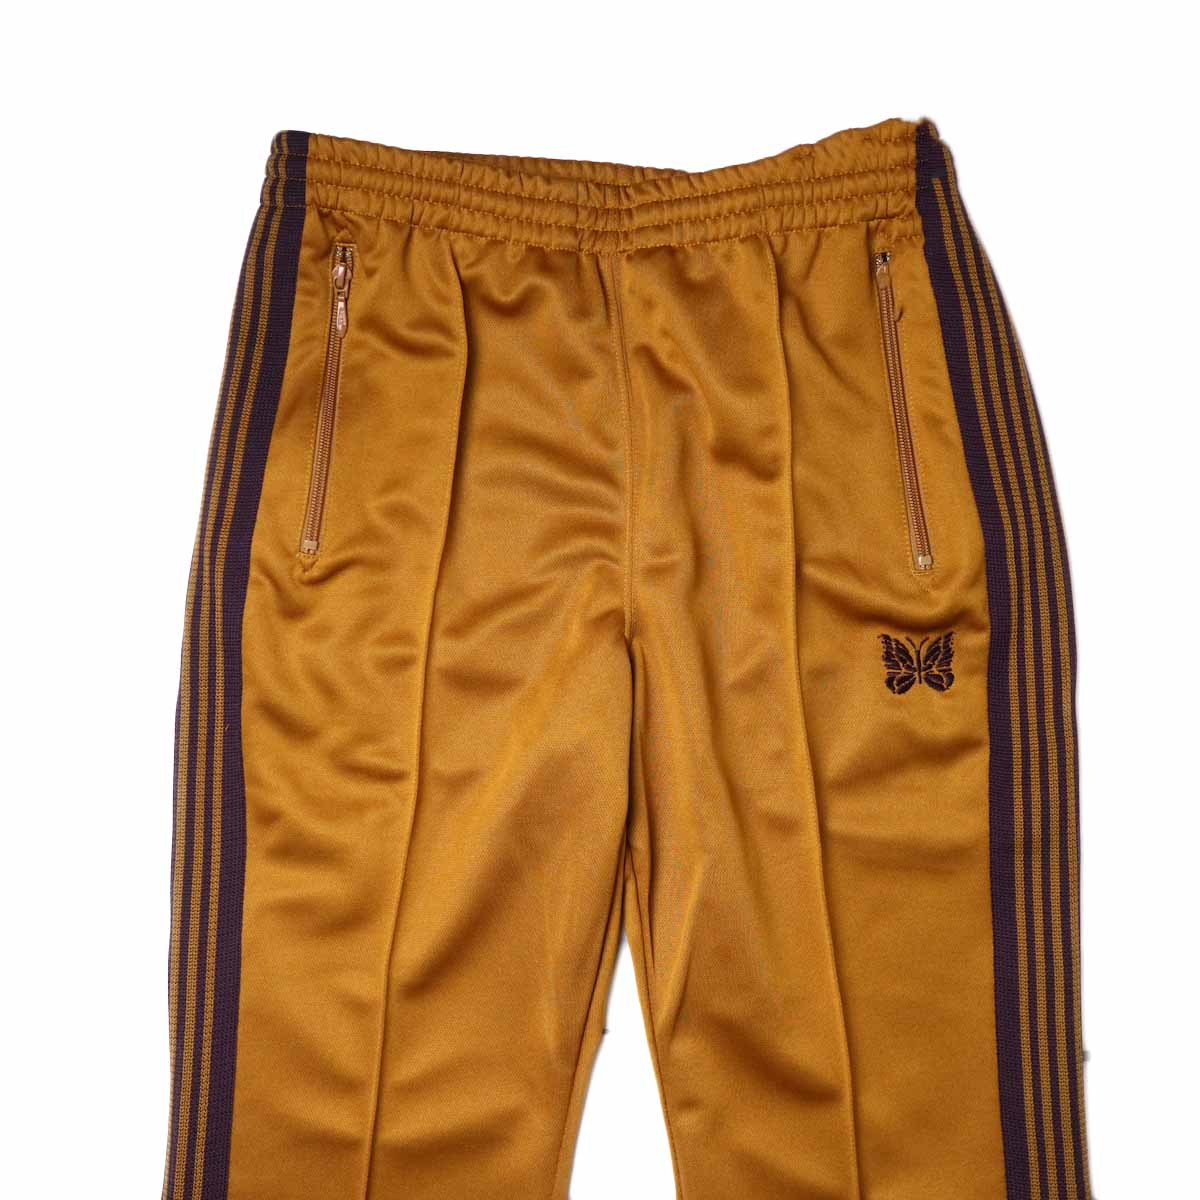 Needles / Boot-cut Track Pants -Poly Smooth (Mustard)ウエスト